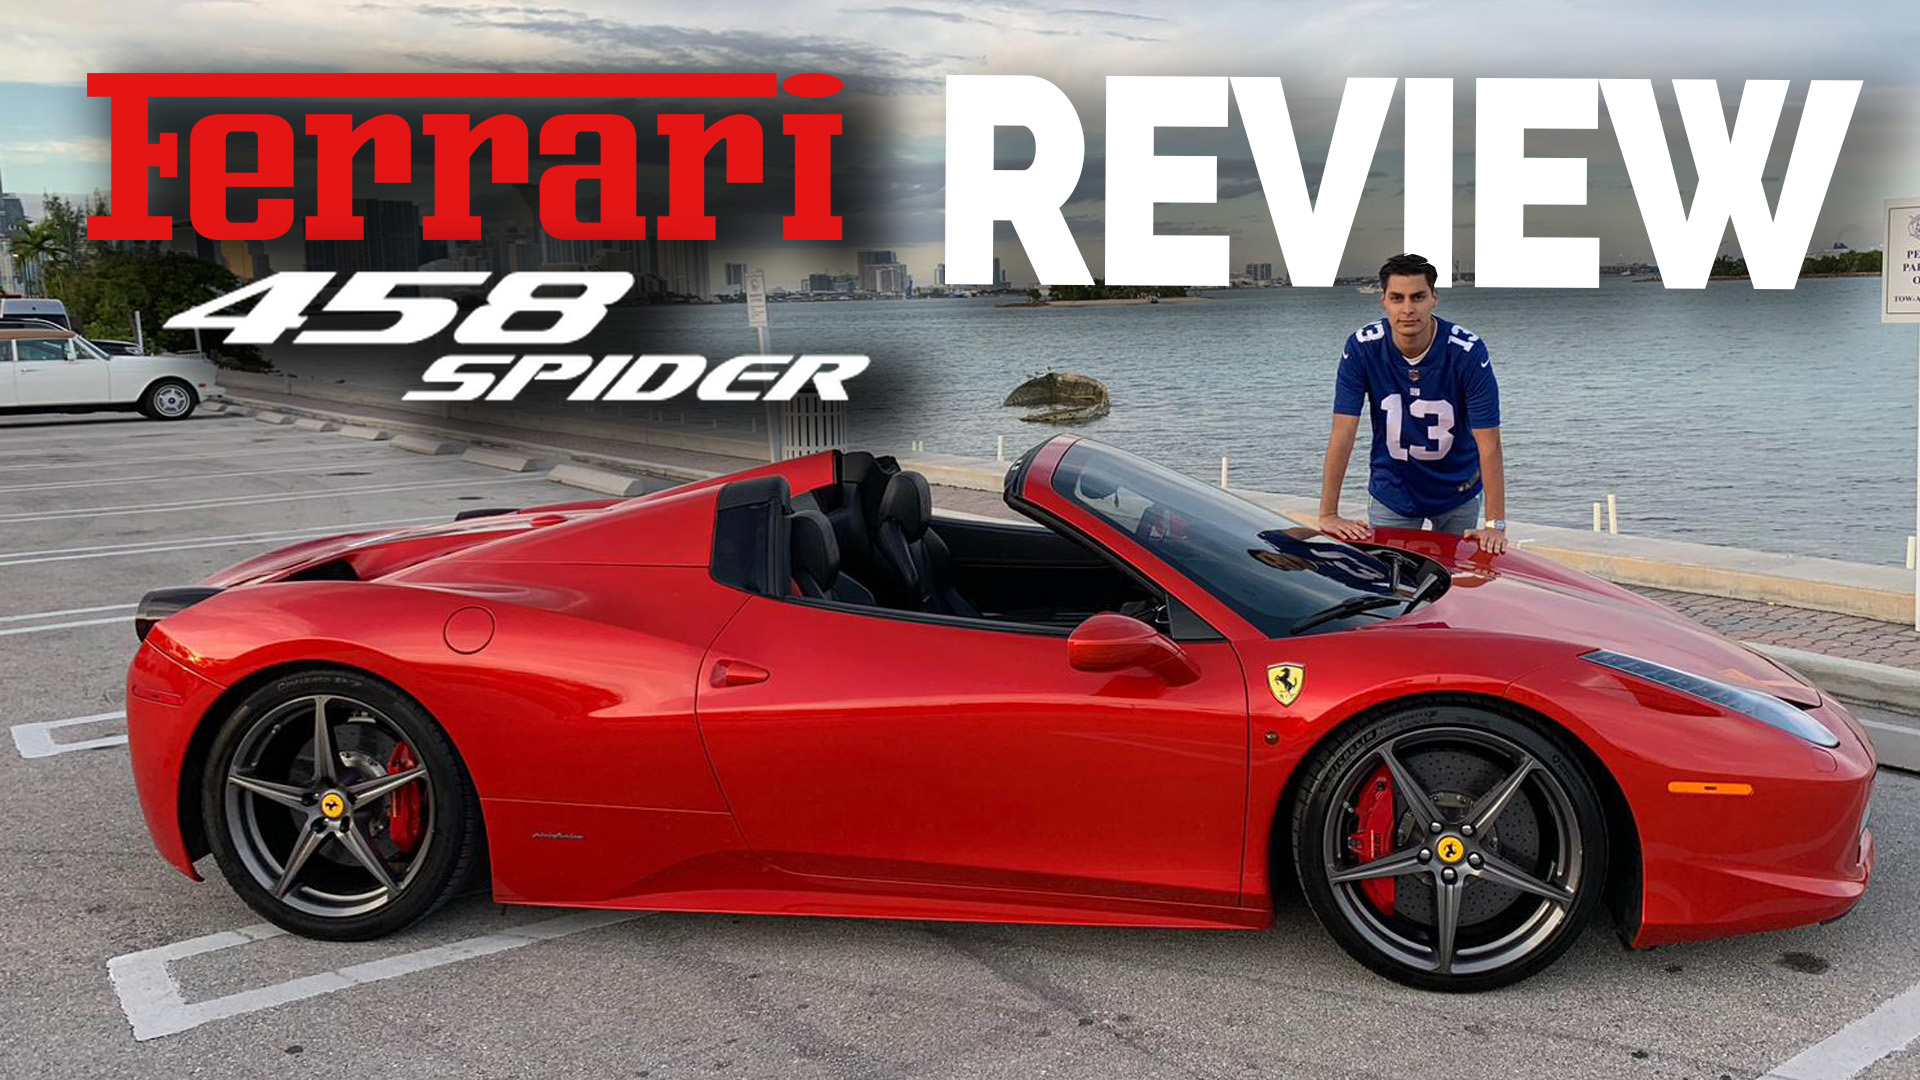 Review Ferrari 458 Spider